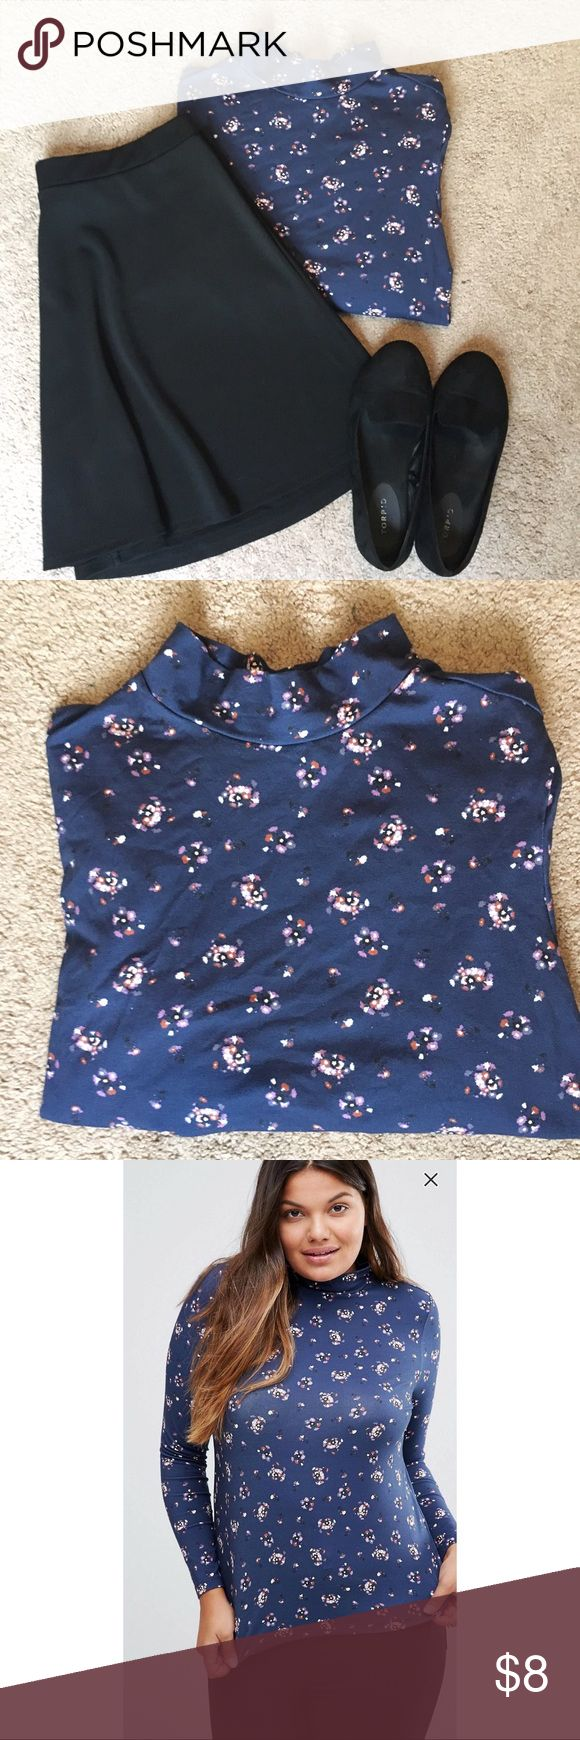 ASOS Curve High Neck Flower Print Top Size 20 This top was a little too snug in the chest area but I wish it fit!! Never been worn except to try it on. It's super cute and light weight, good for summer evenings. Looks adorable paired with a black skirt and some flats. Size 20 OFFERS WELCOME!! ASOS Curve Tops